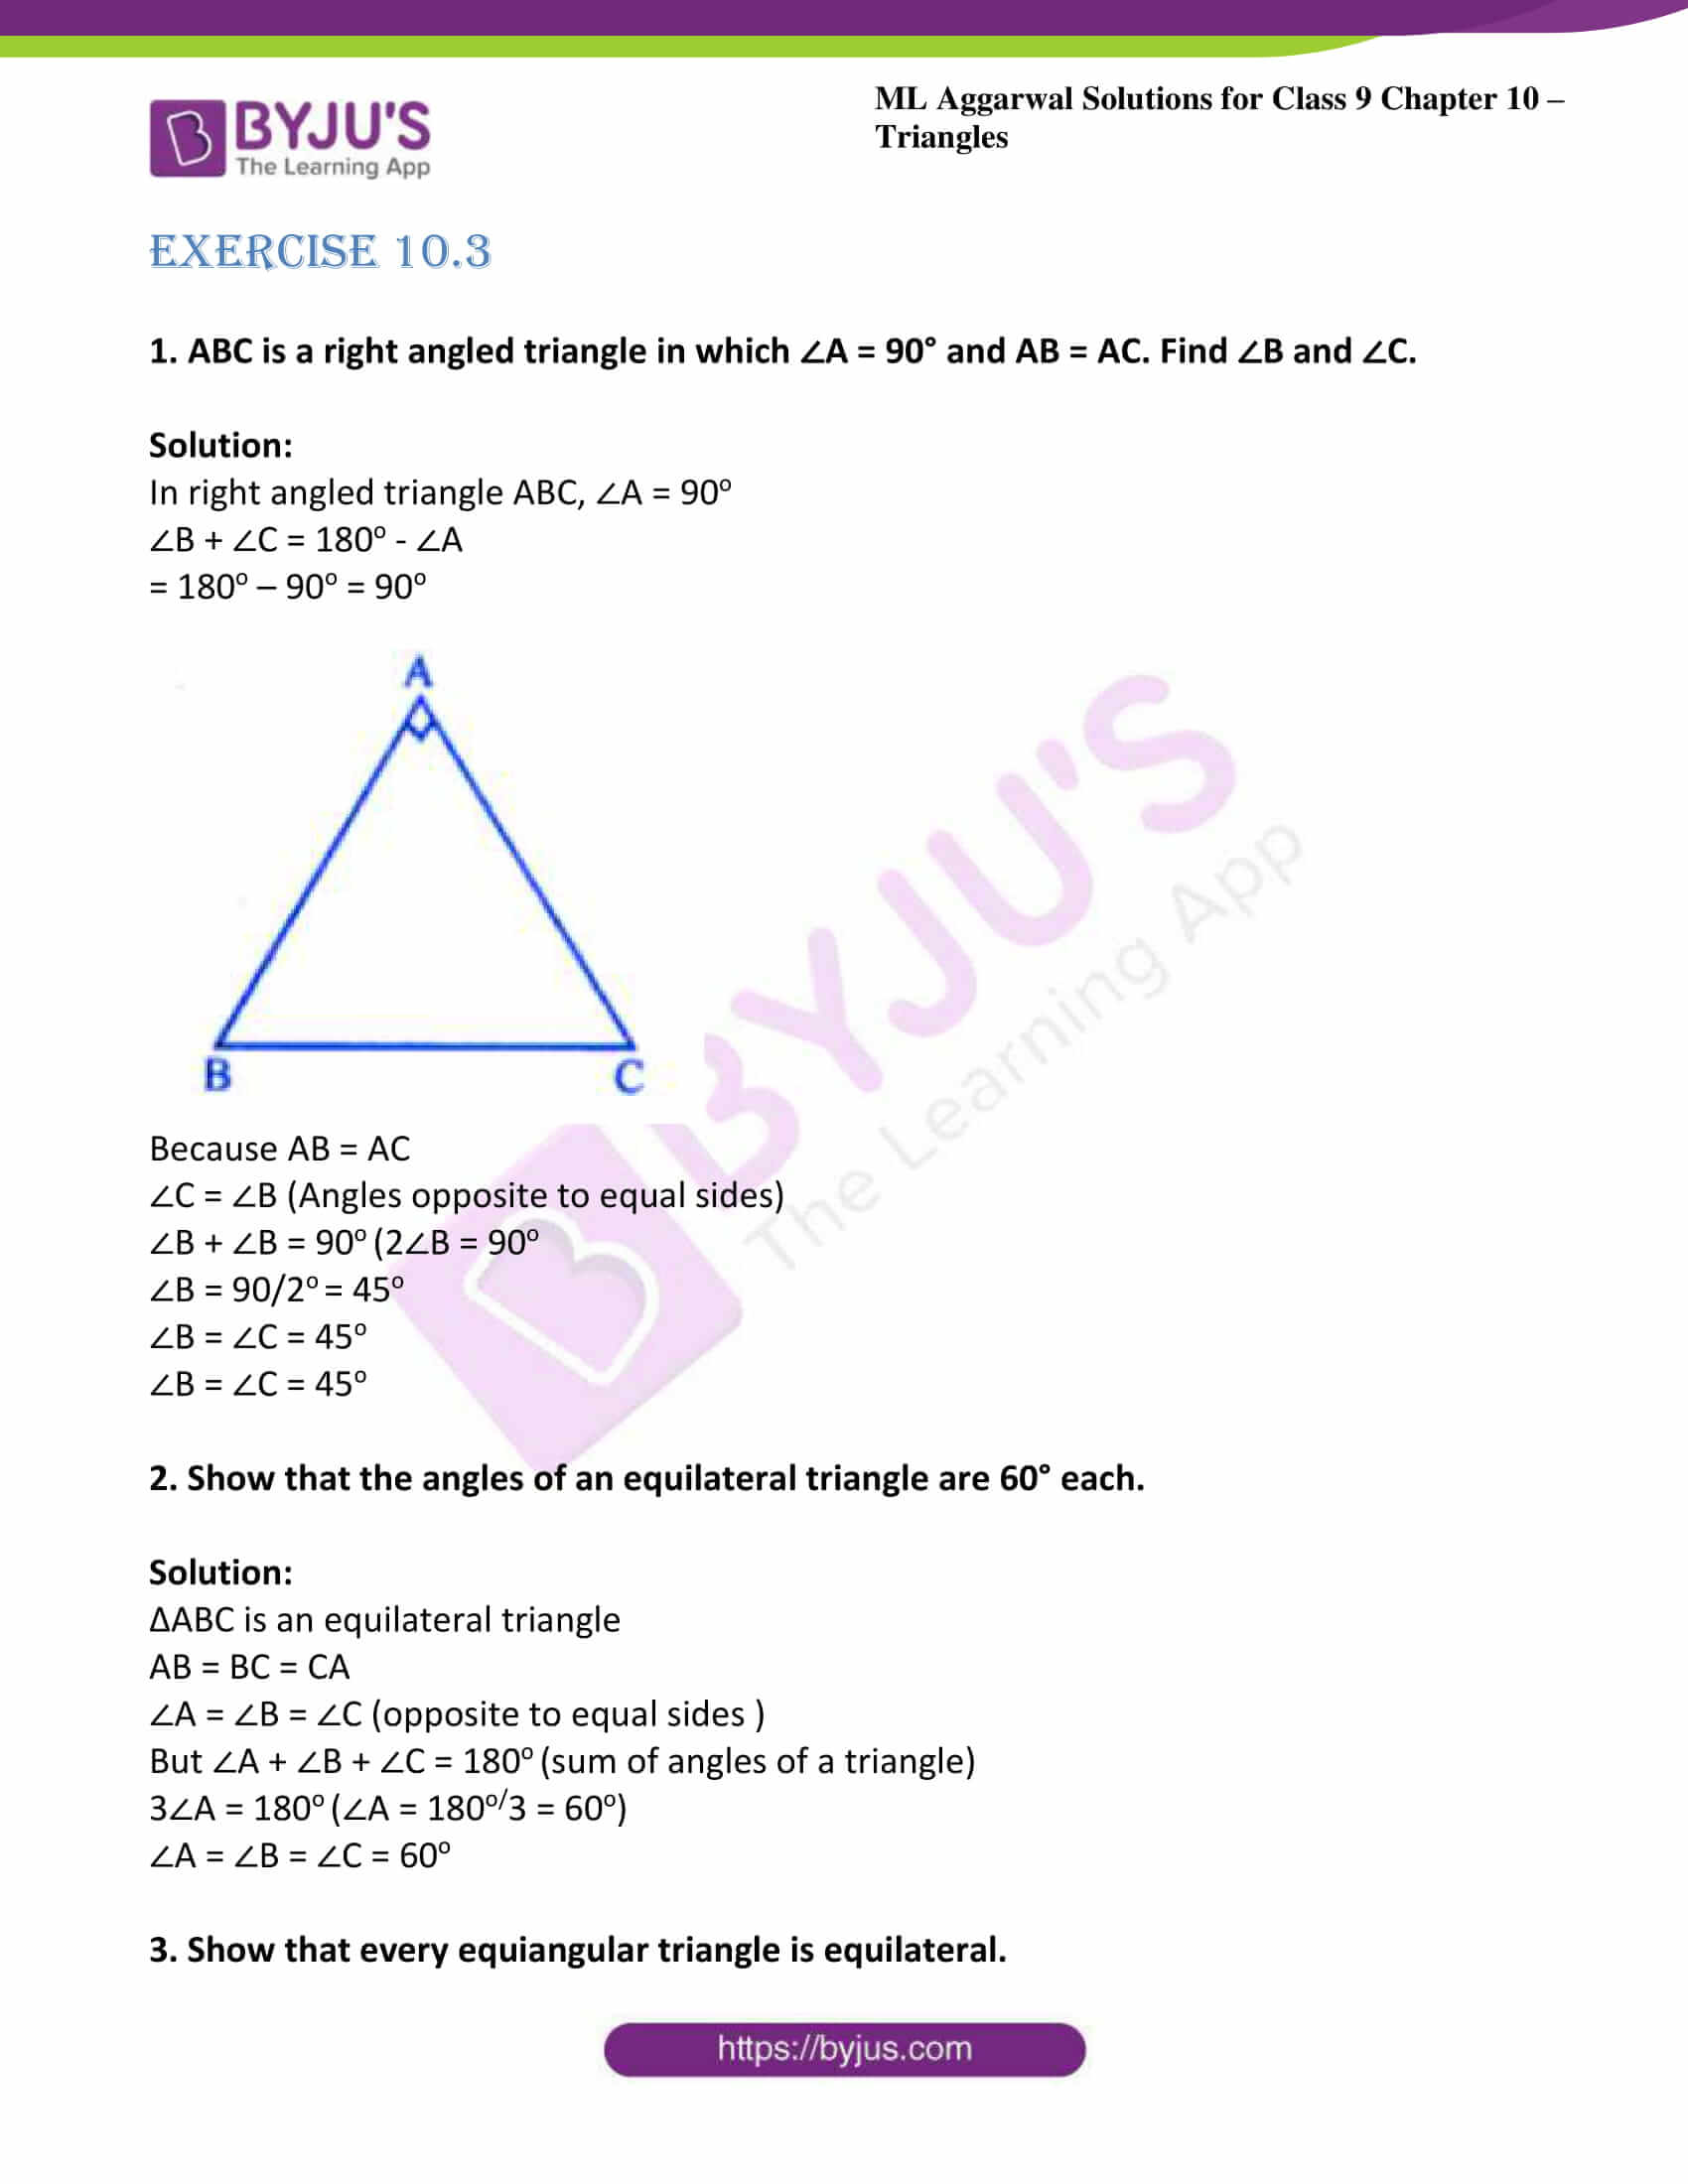 ml aggarwal solutions for class 9 maths chapter 10 15